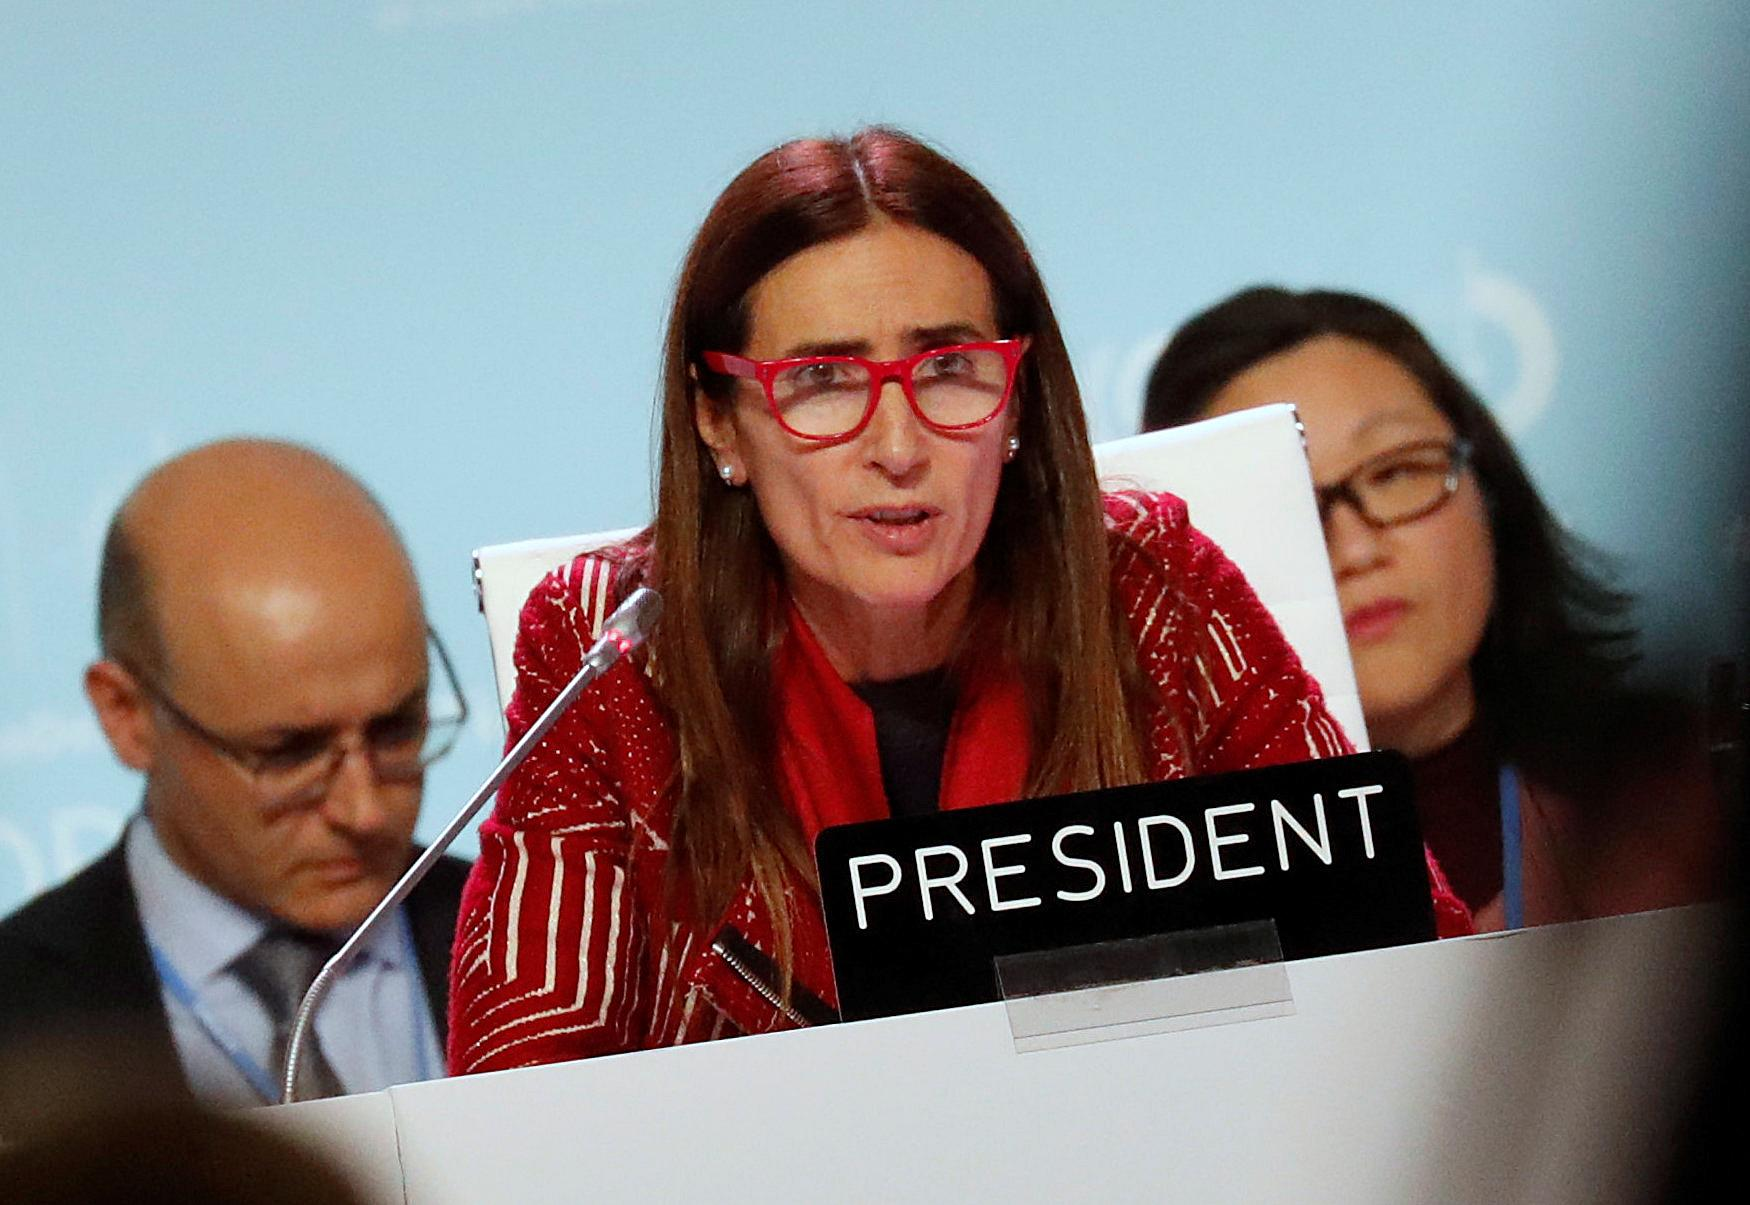 Major states snub calls for climate action as U.N. summit wraps up